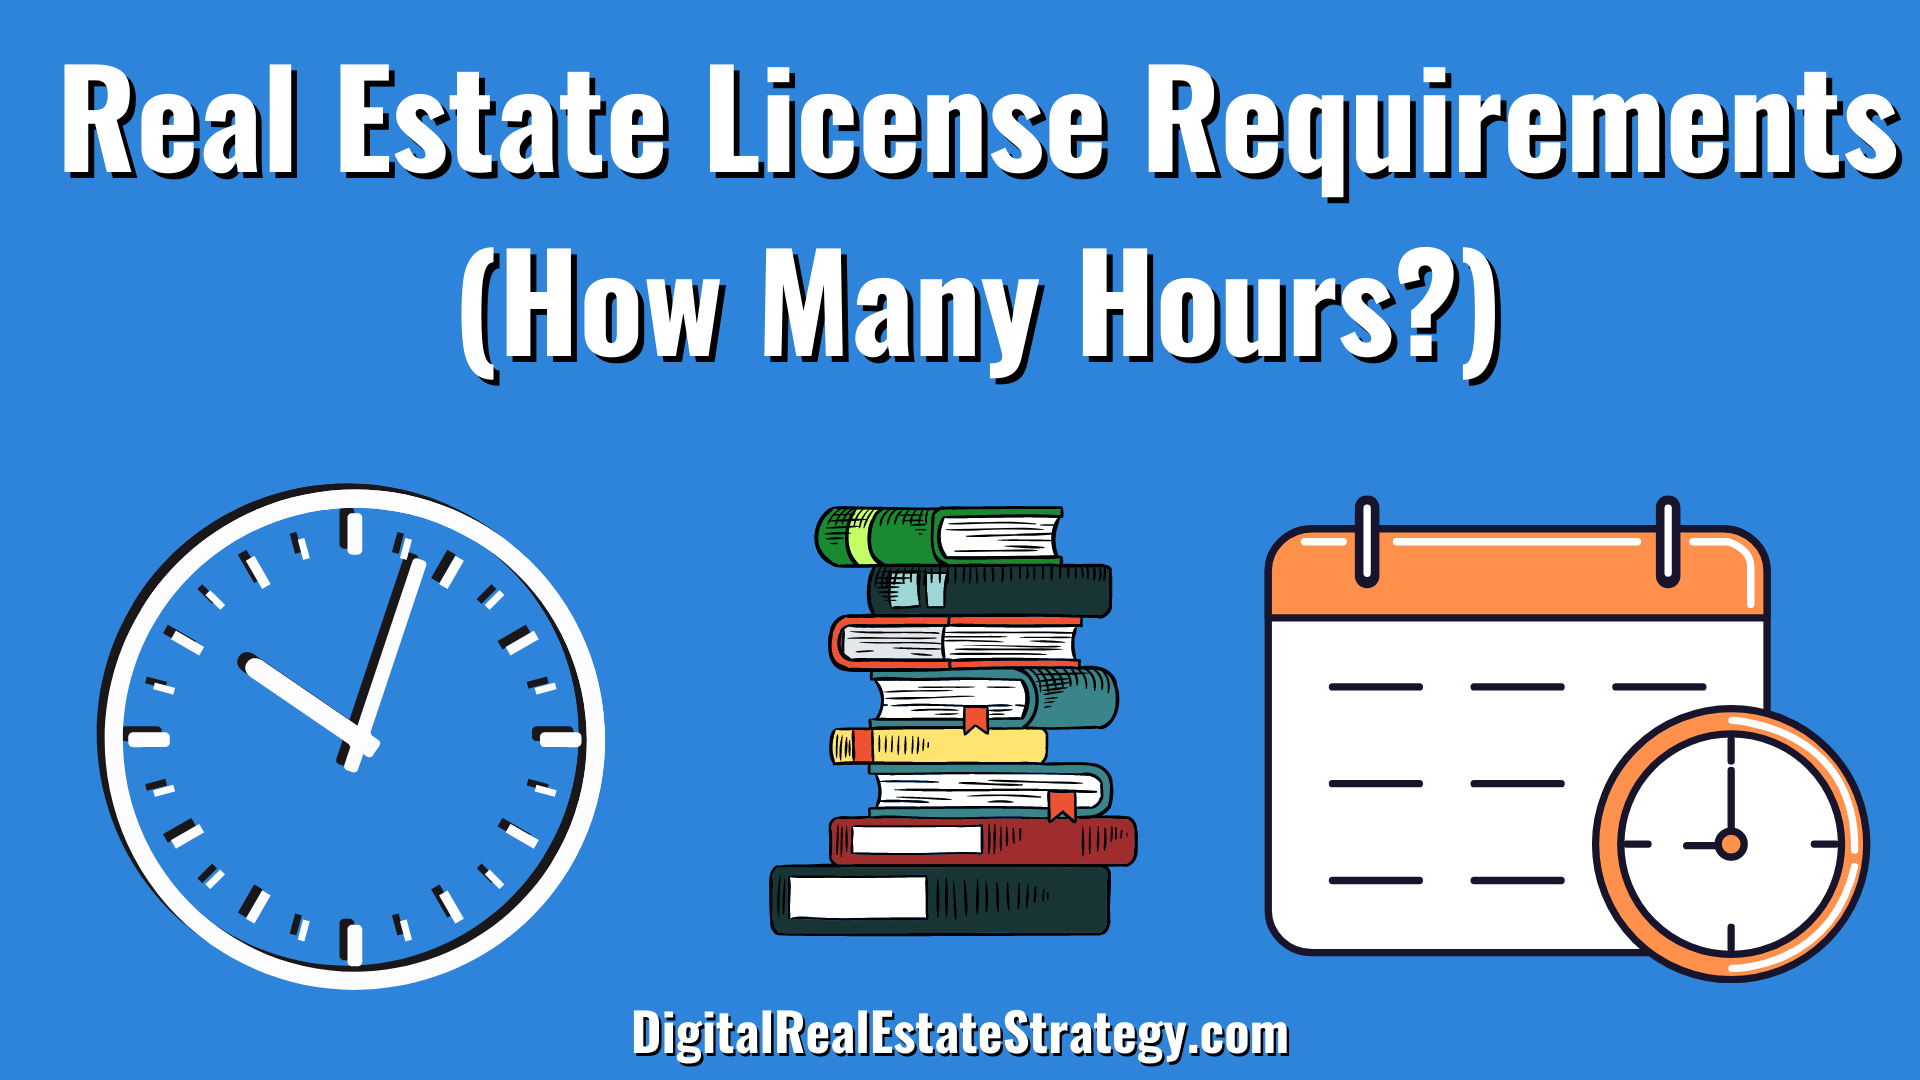 Real Estate License Requirements - Hours Required - Real Estate School - Jerome Lewis - Philadelphia - eXp Realty - Hours Required Image